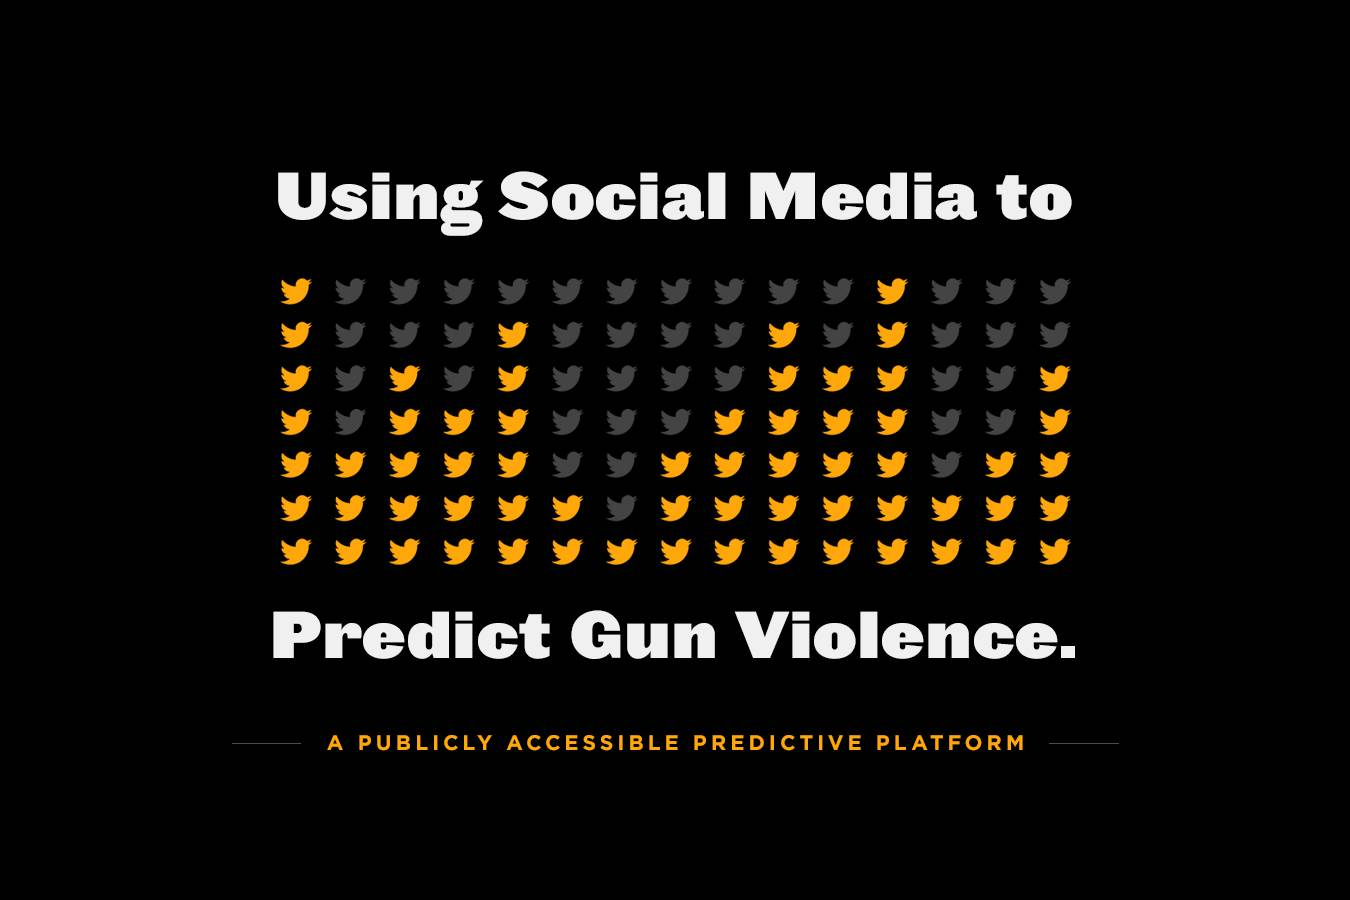 A gun violence prevention platform using data scraped from the Google searches and social media chatter debuted at SXSW this week.